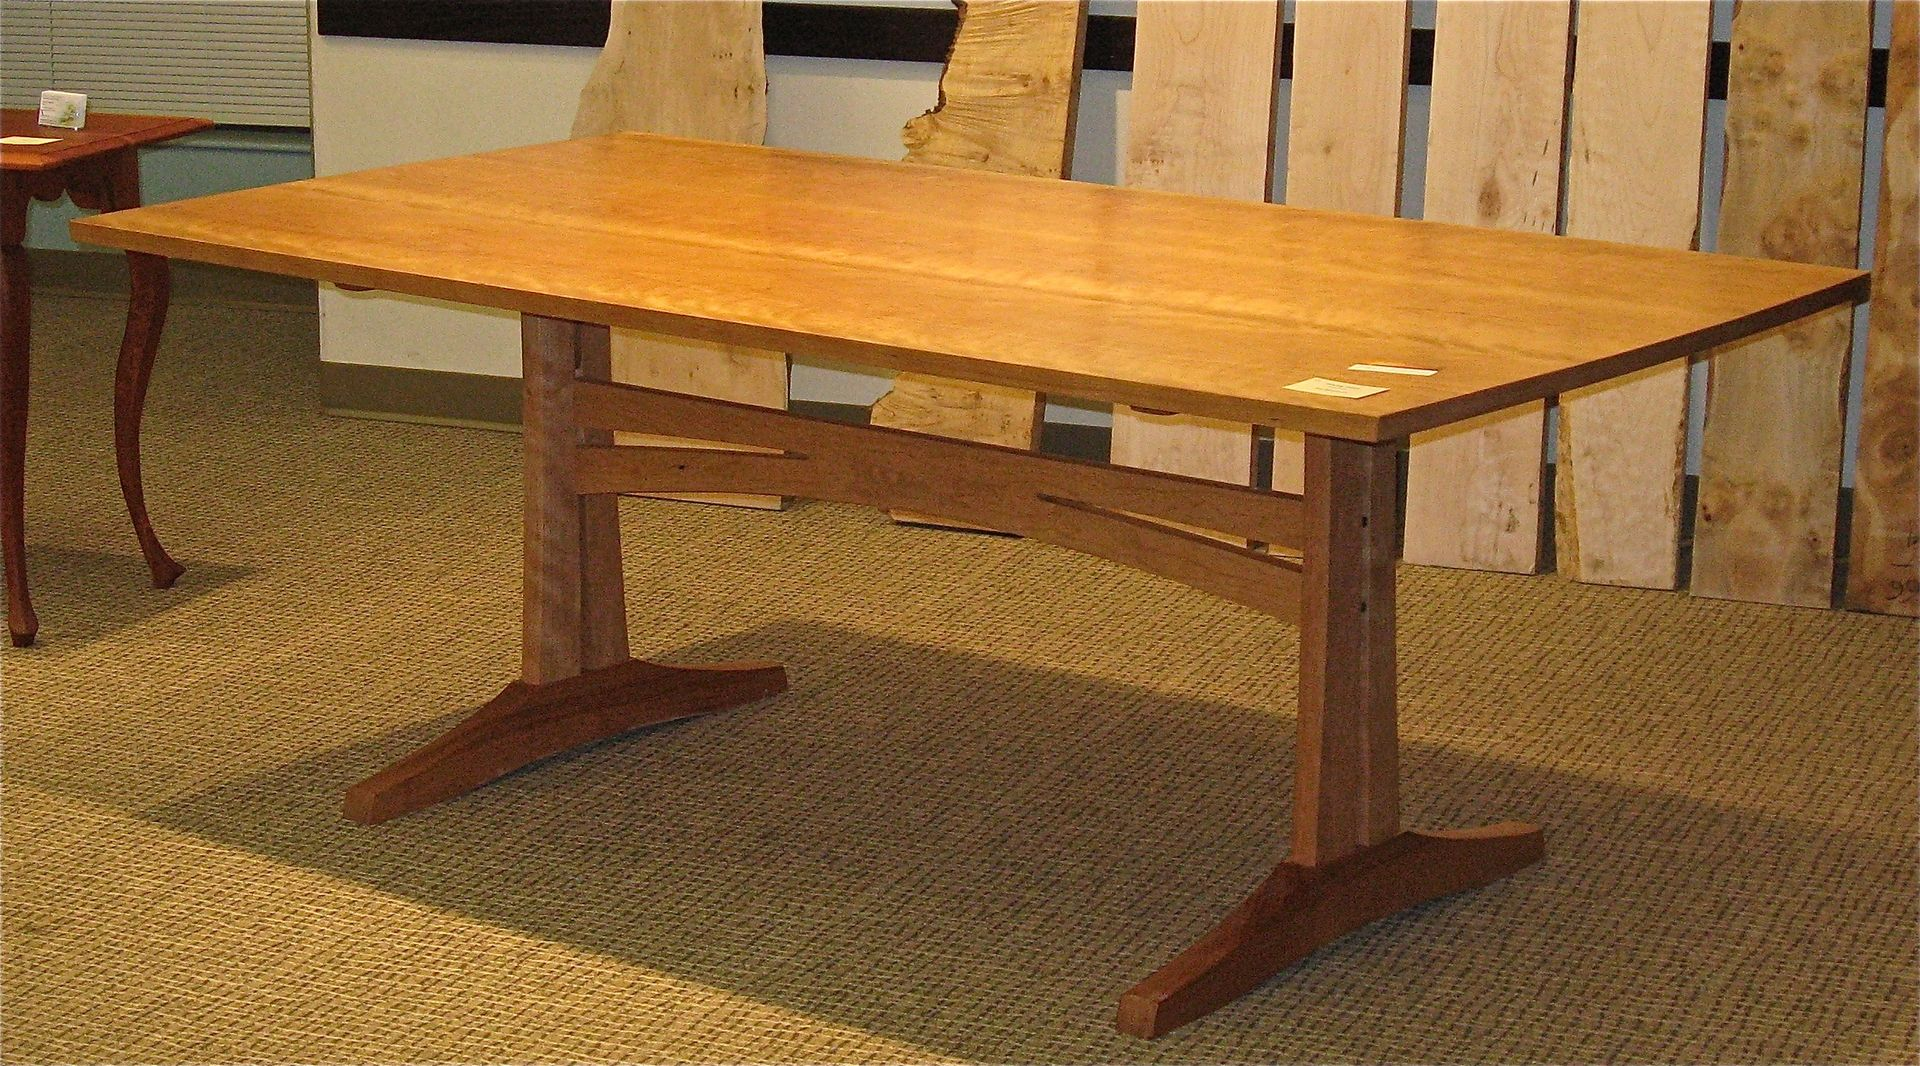 Handmade cherry 3 plank trestle dining table by pat for Cherry dining table